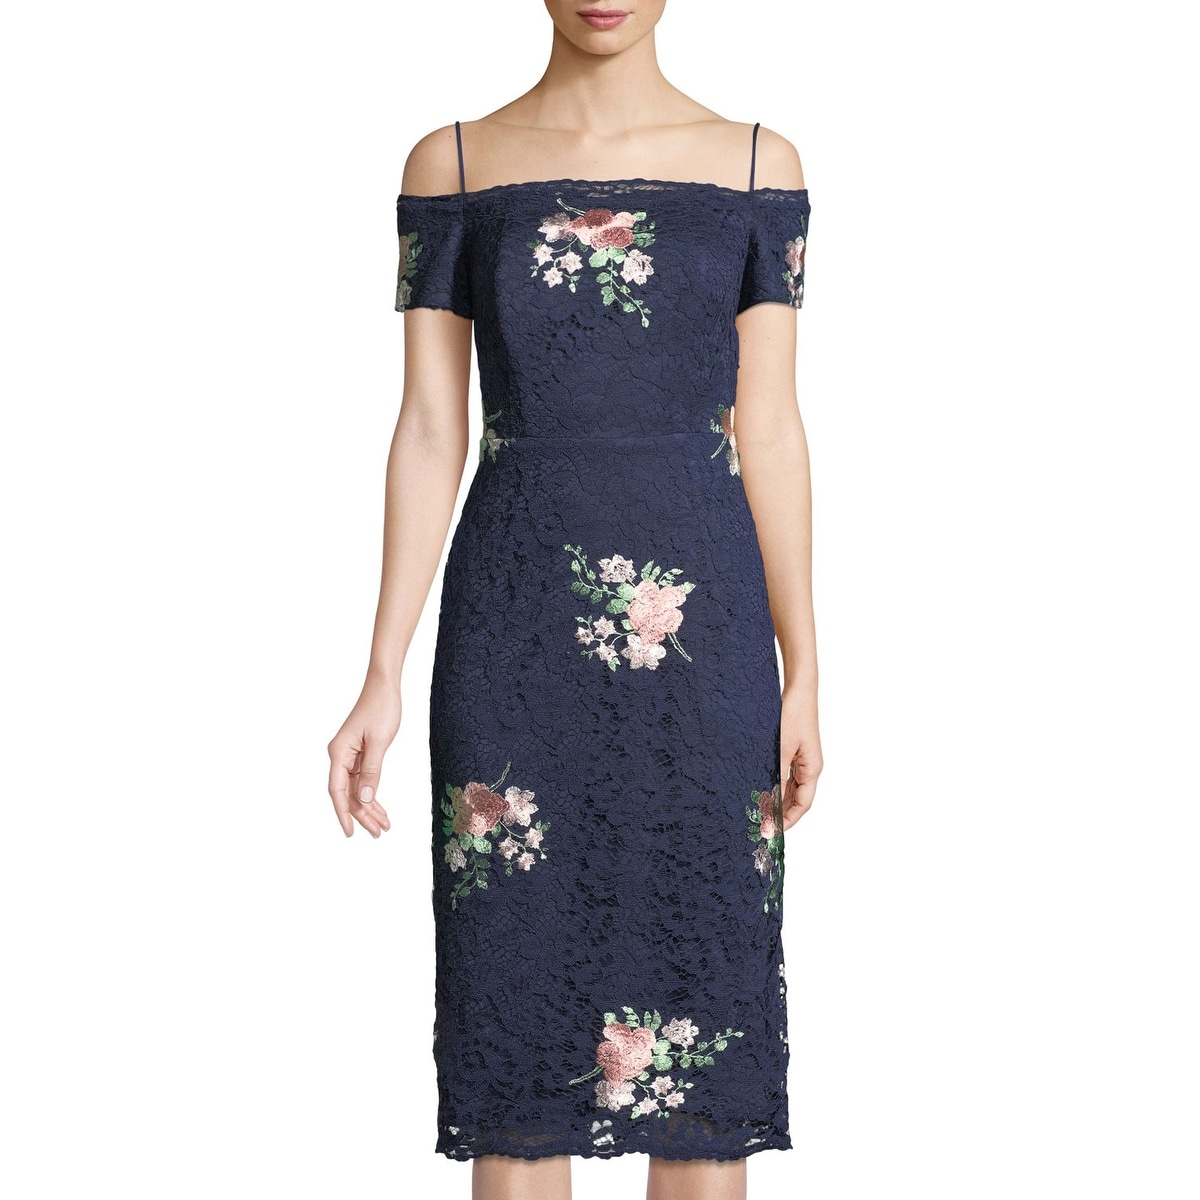 862e8e38 Nicole Miller Dresses | Find Great Women's Clothing Deals Shopping at  Overstock